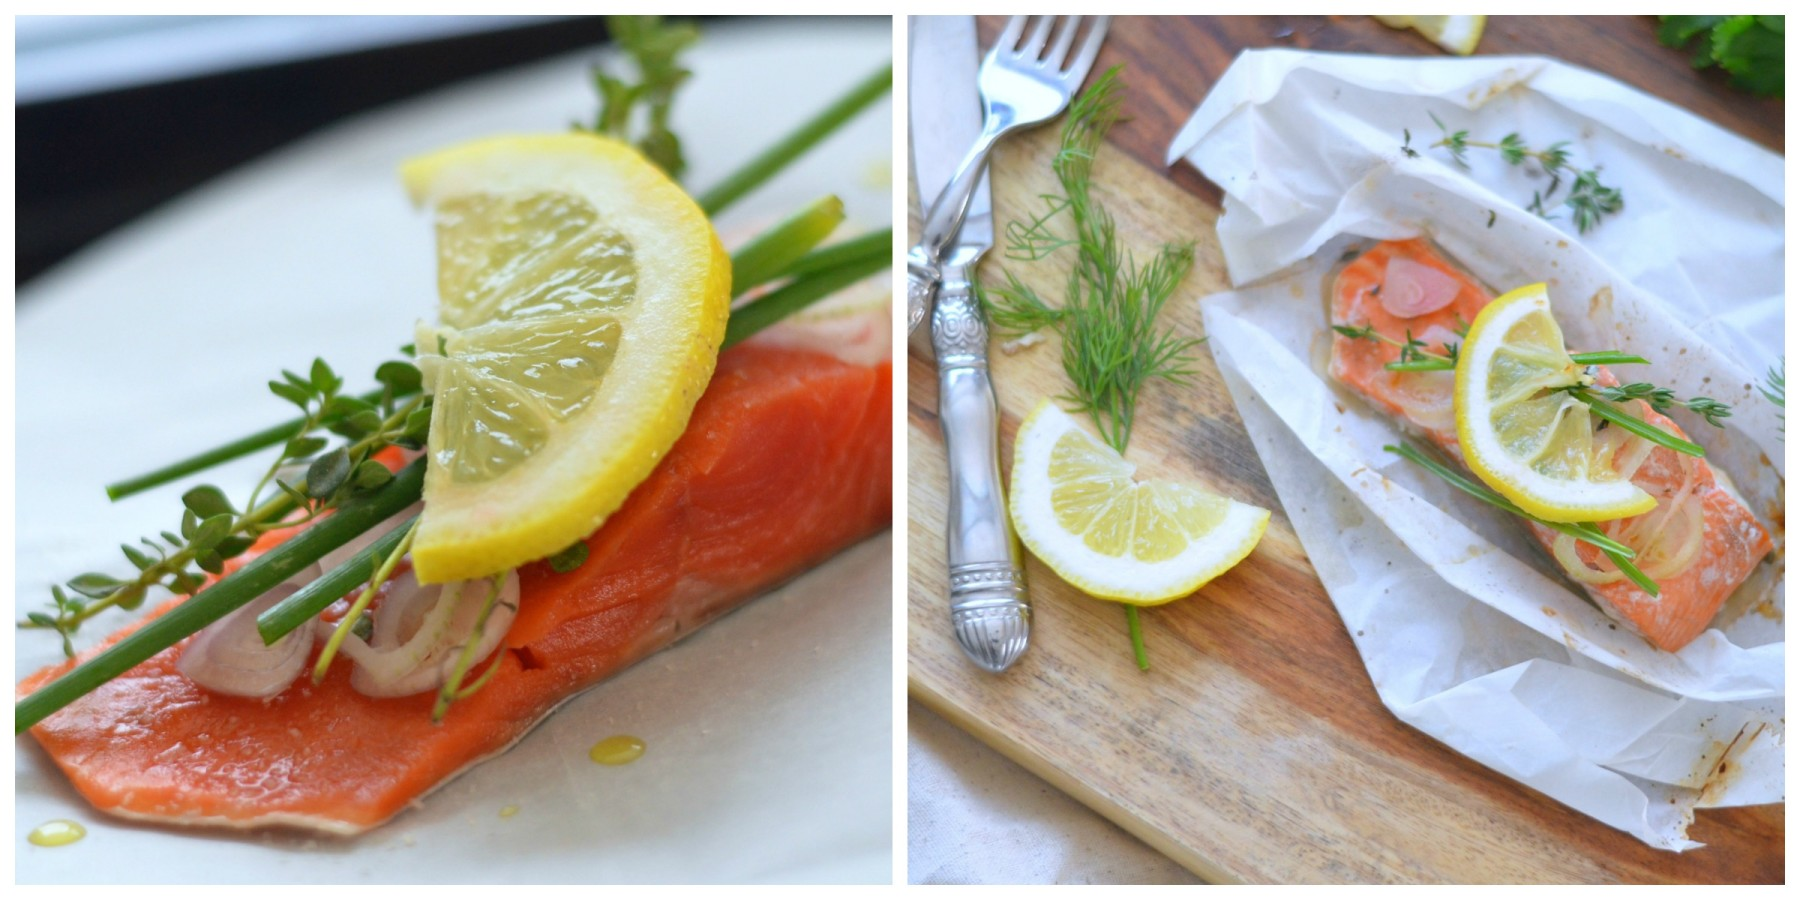 Salmon en Papillote before and after roasting